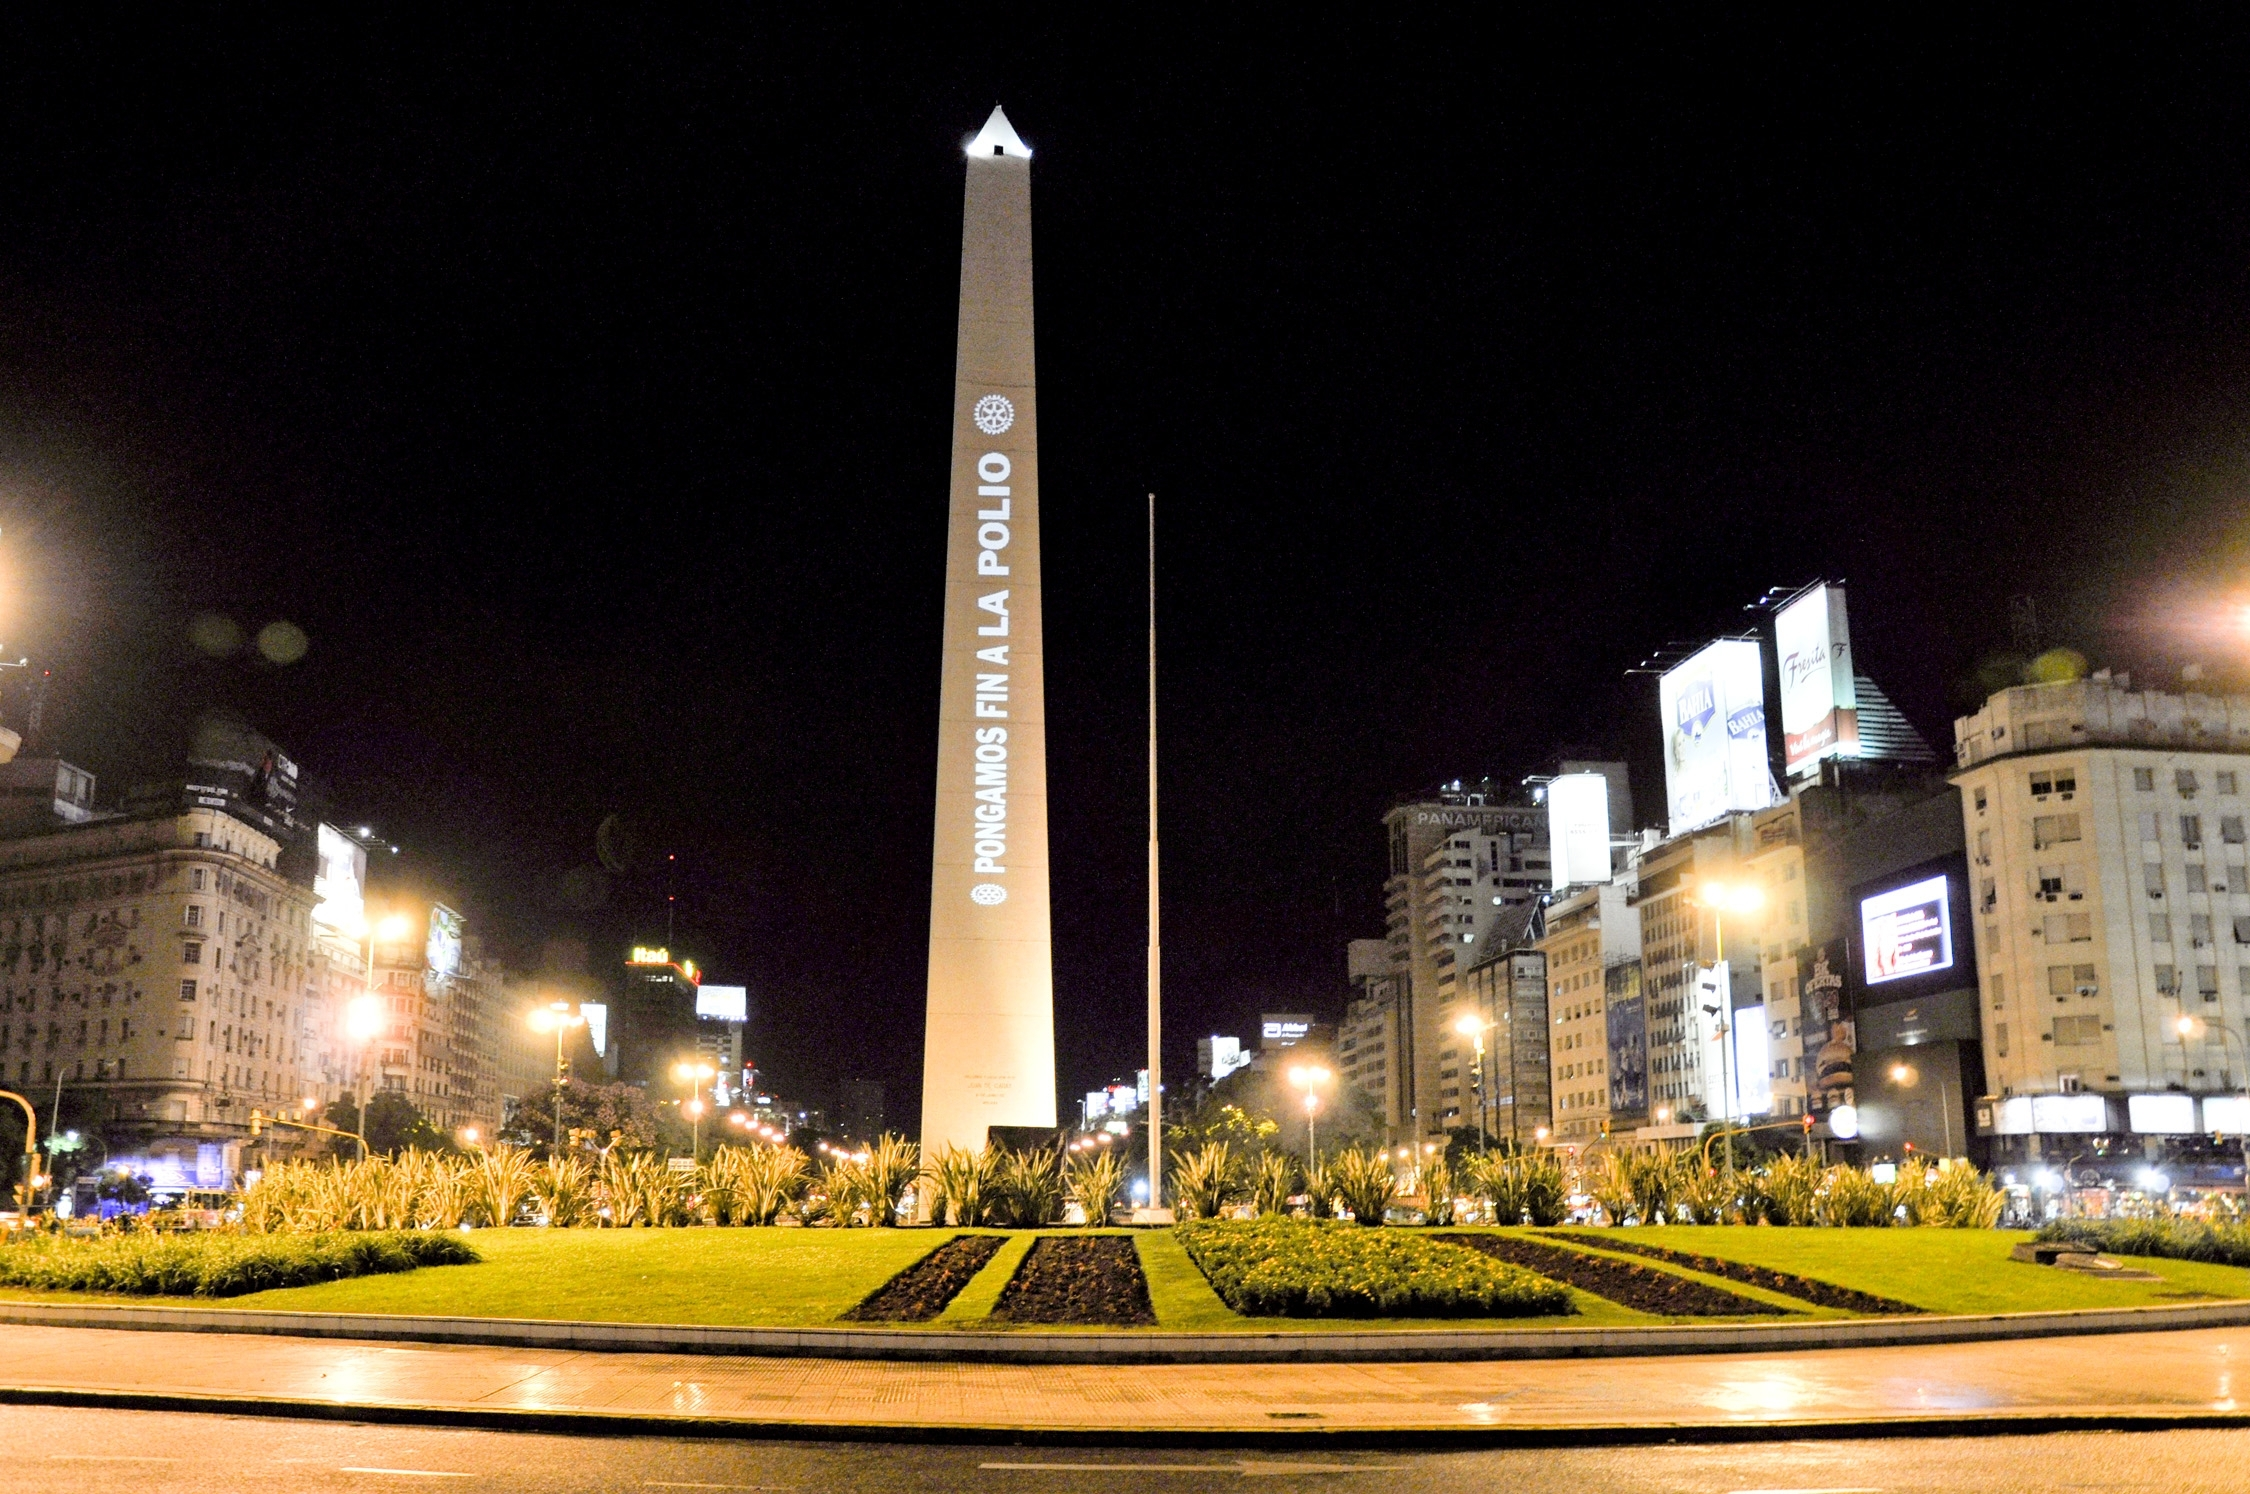 In 2010, the Obelisk in Buenos Aires carried Rotary's polio eradication message.